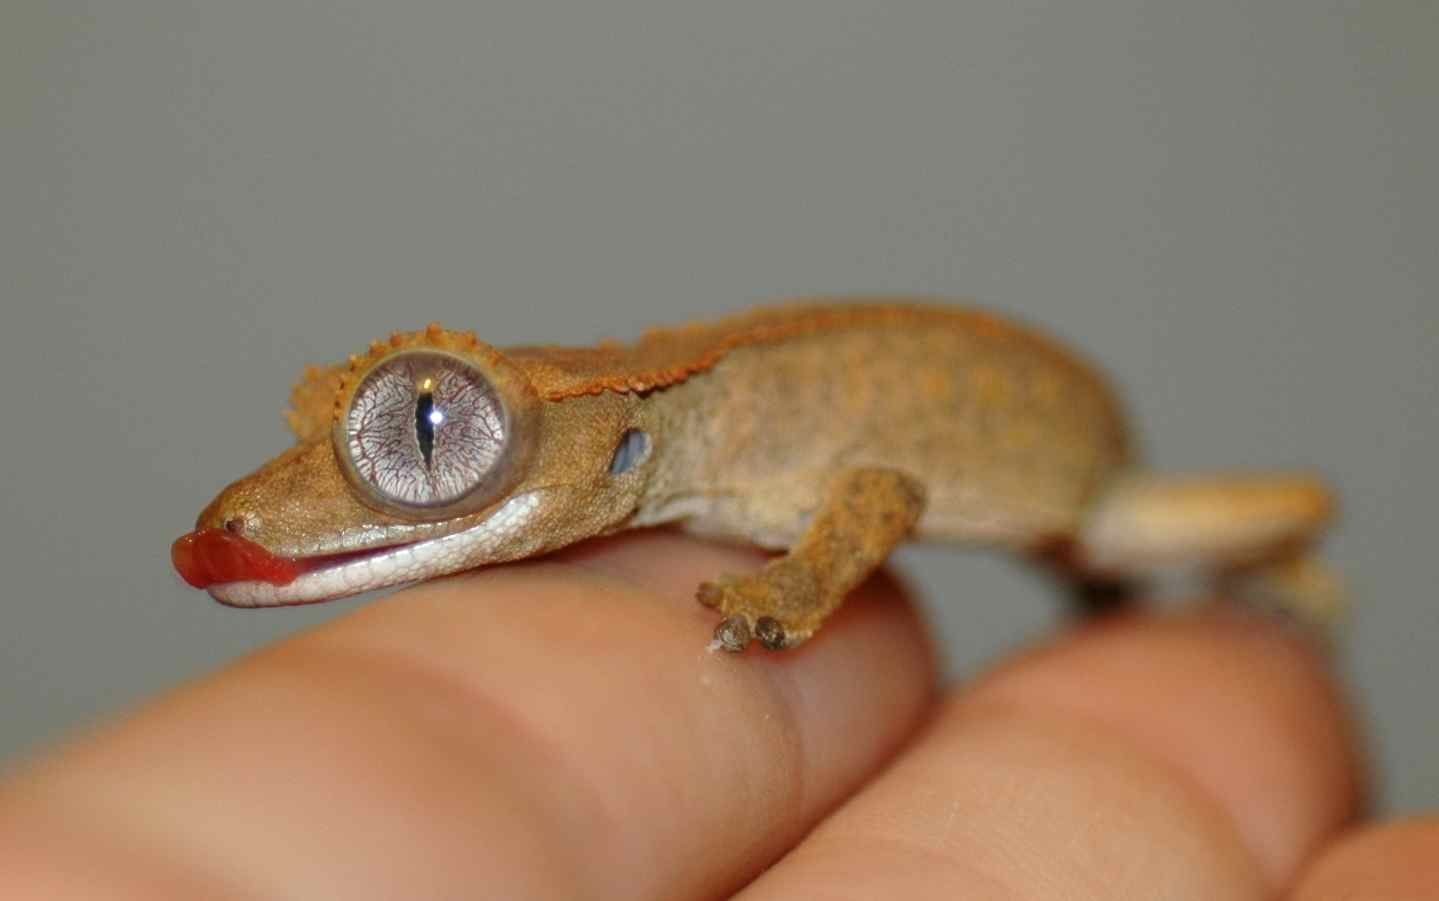 Gecko | May\'s way-too-big eye. She also lost some toes in a bad shed ...